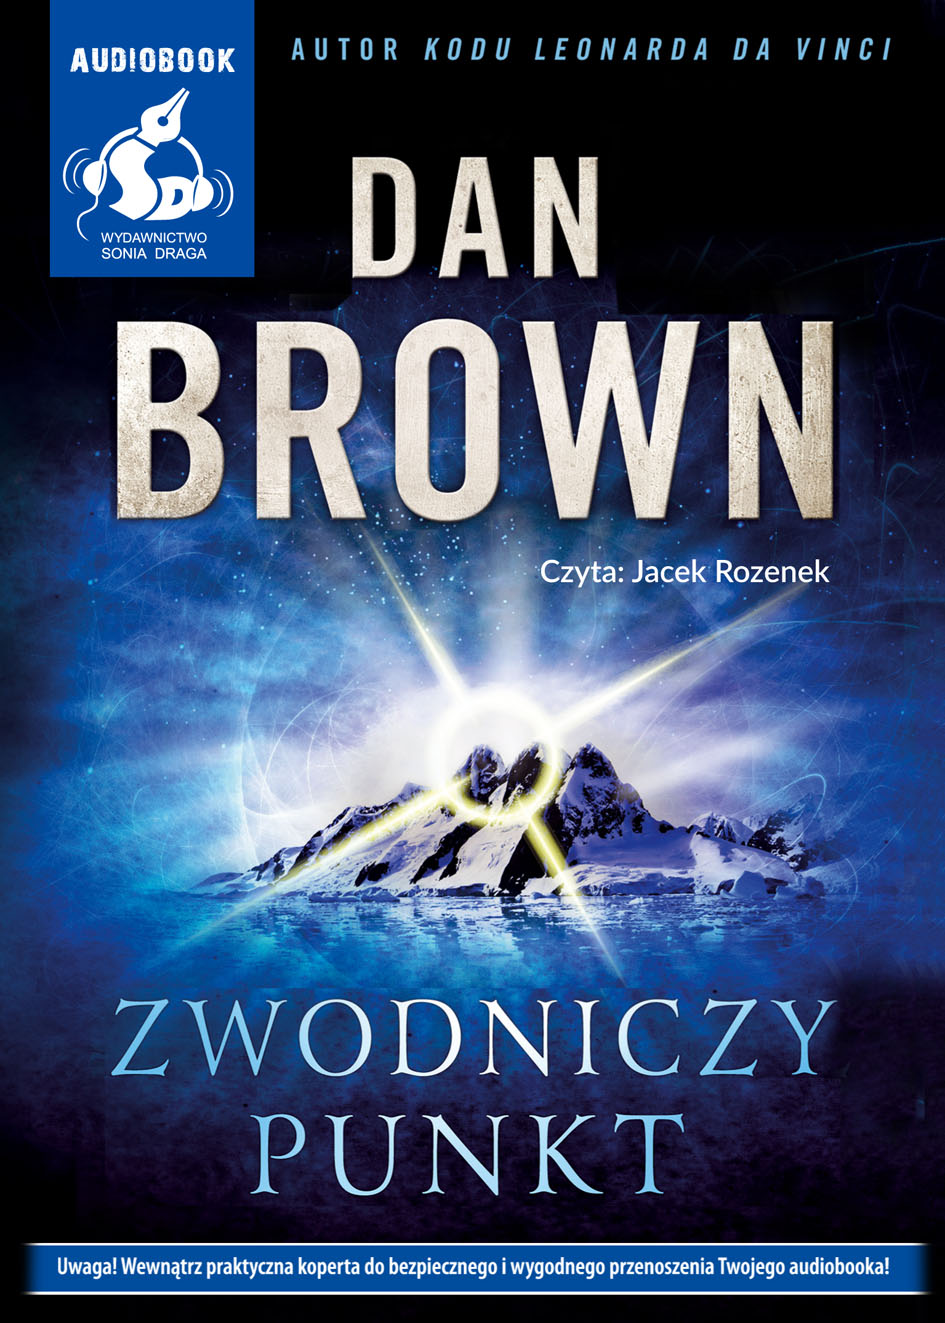 Zwodniczy punkt – audiobook.Autor: Dan Brown